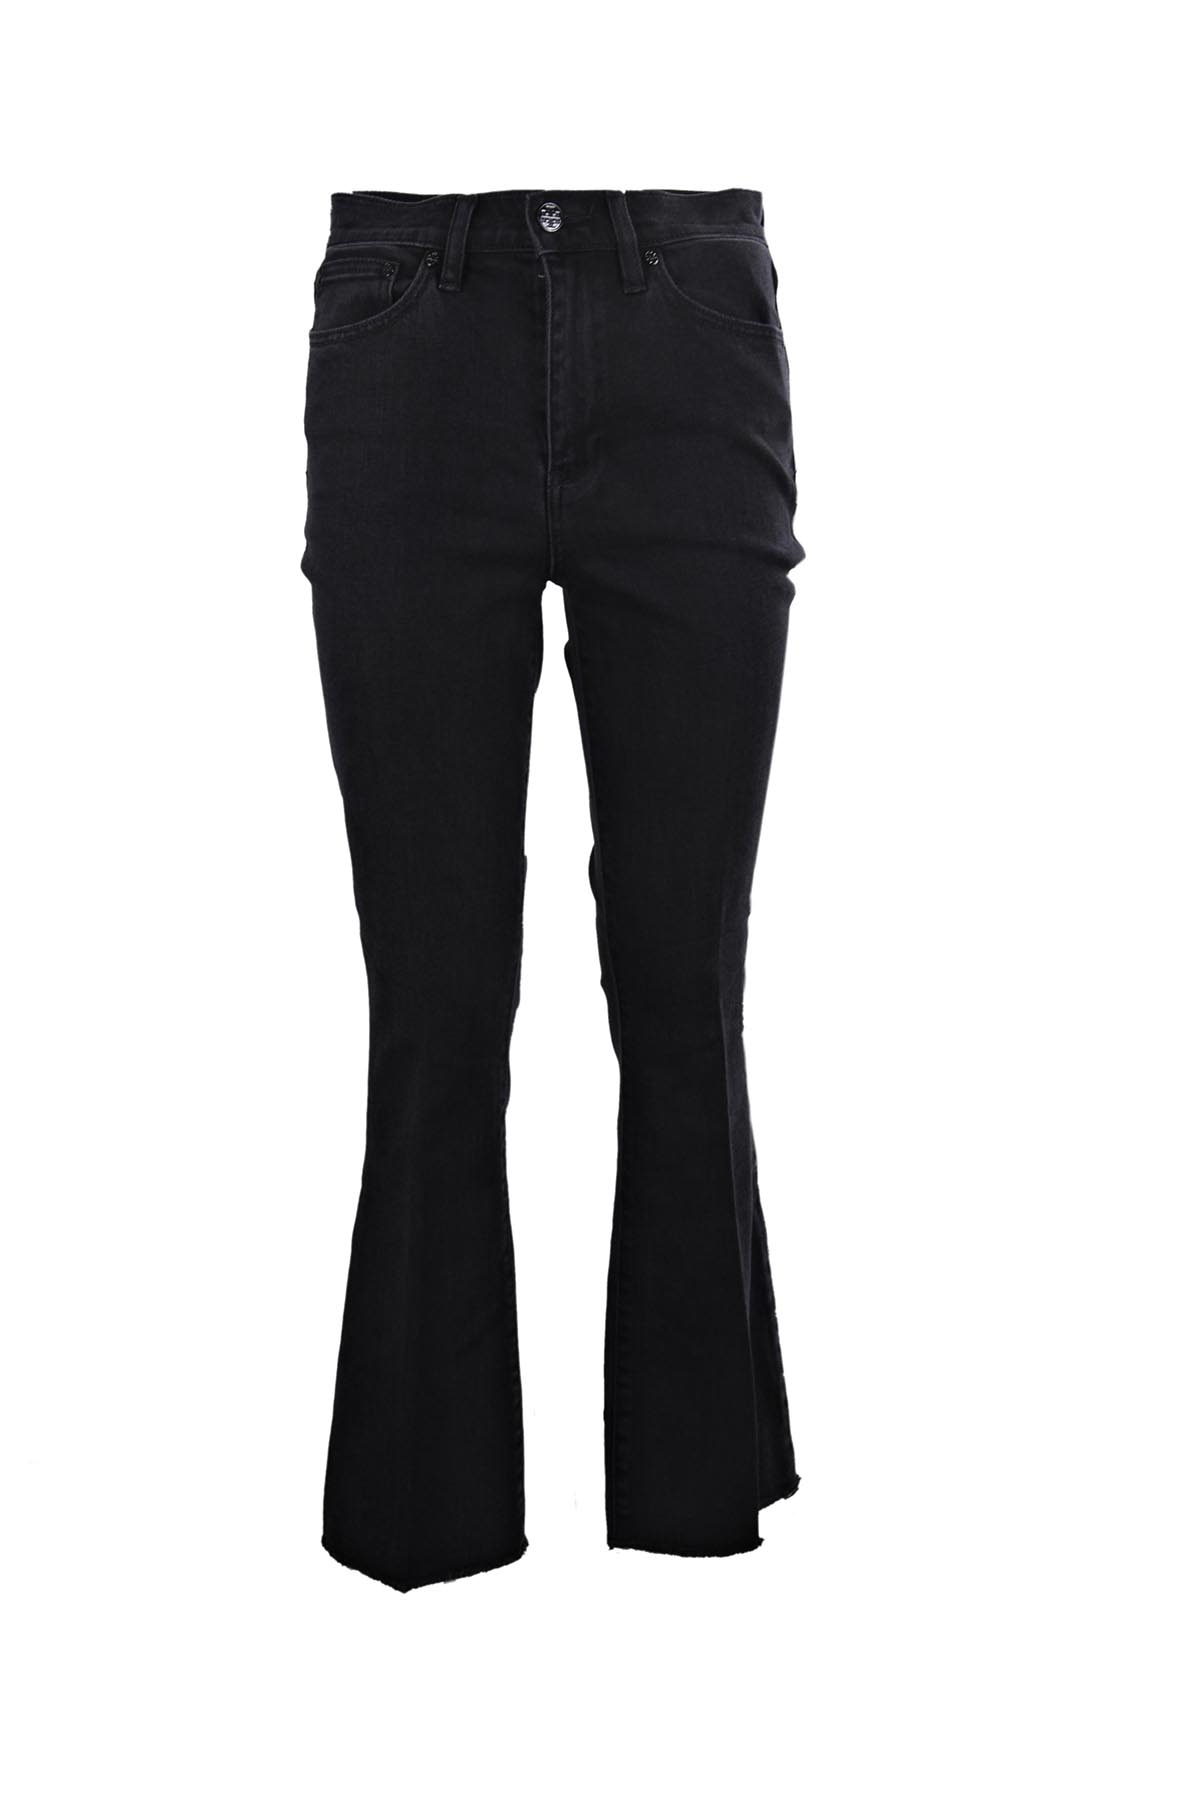 Wade frayed flare jeans - Black Tory Burch Popular Cheap Online Sale Manchester Sale Outlet Store GlNYmJ93E